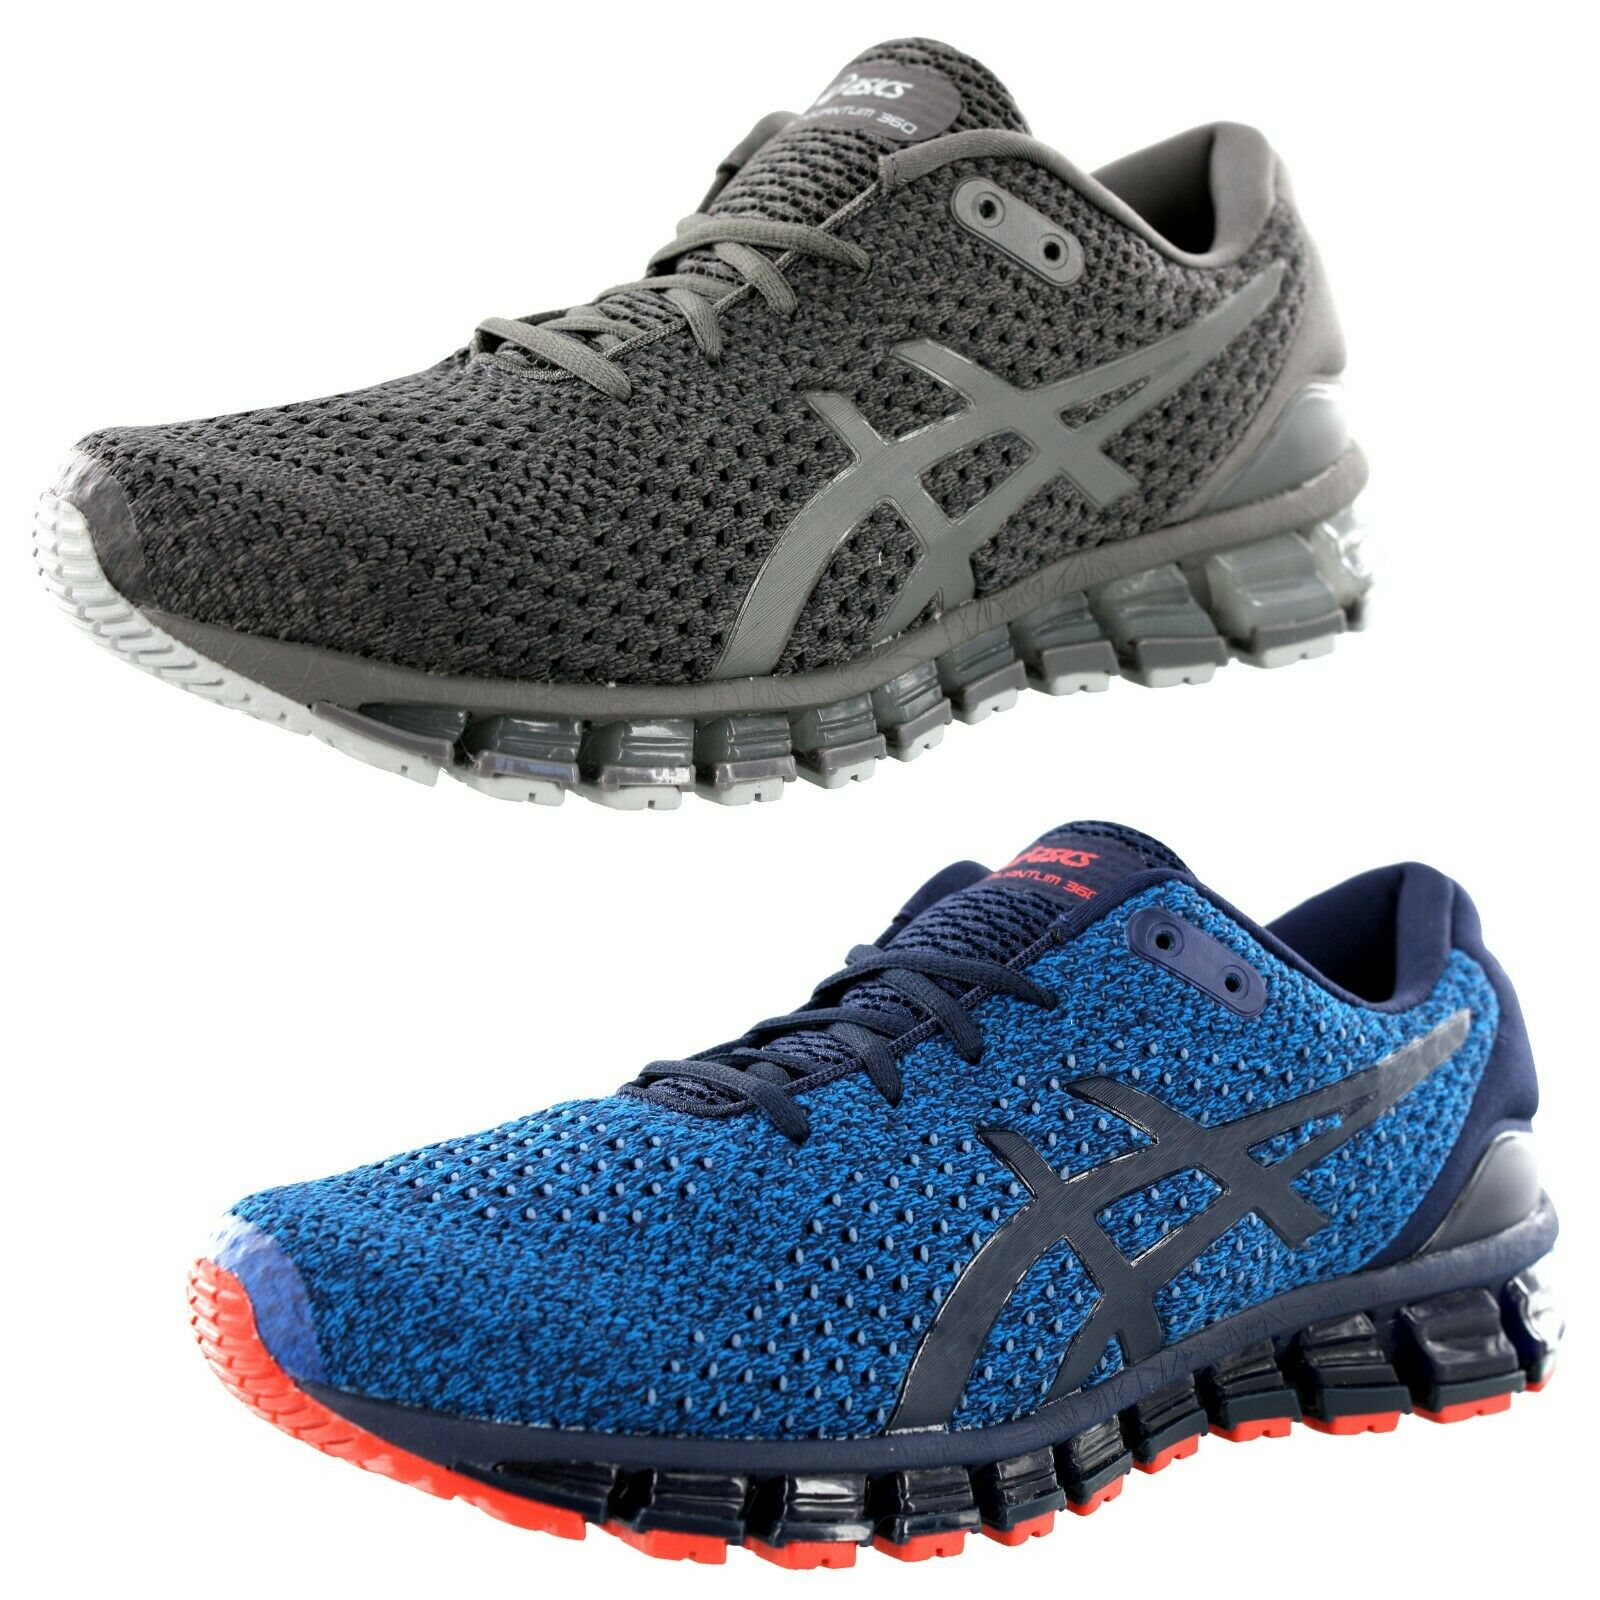 finest selection 3312a f5228 ASICS MEN'S GEL-QUANTUM 360 KNIT 2 RUNNING SHOES